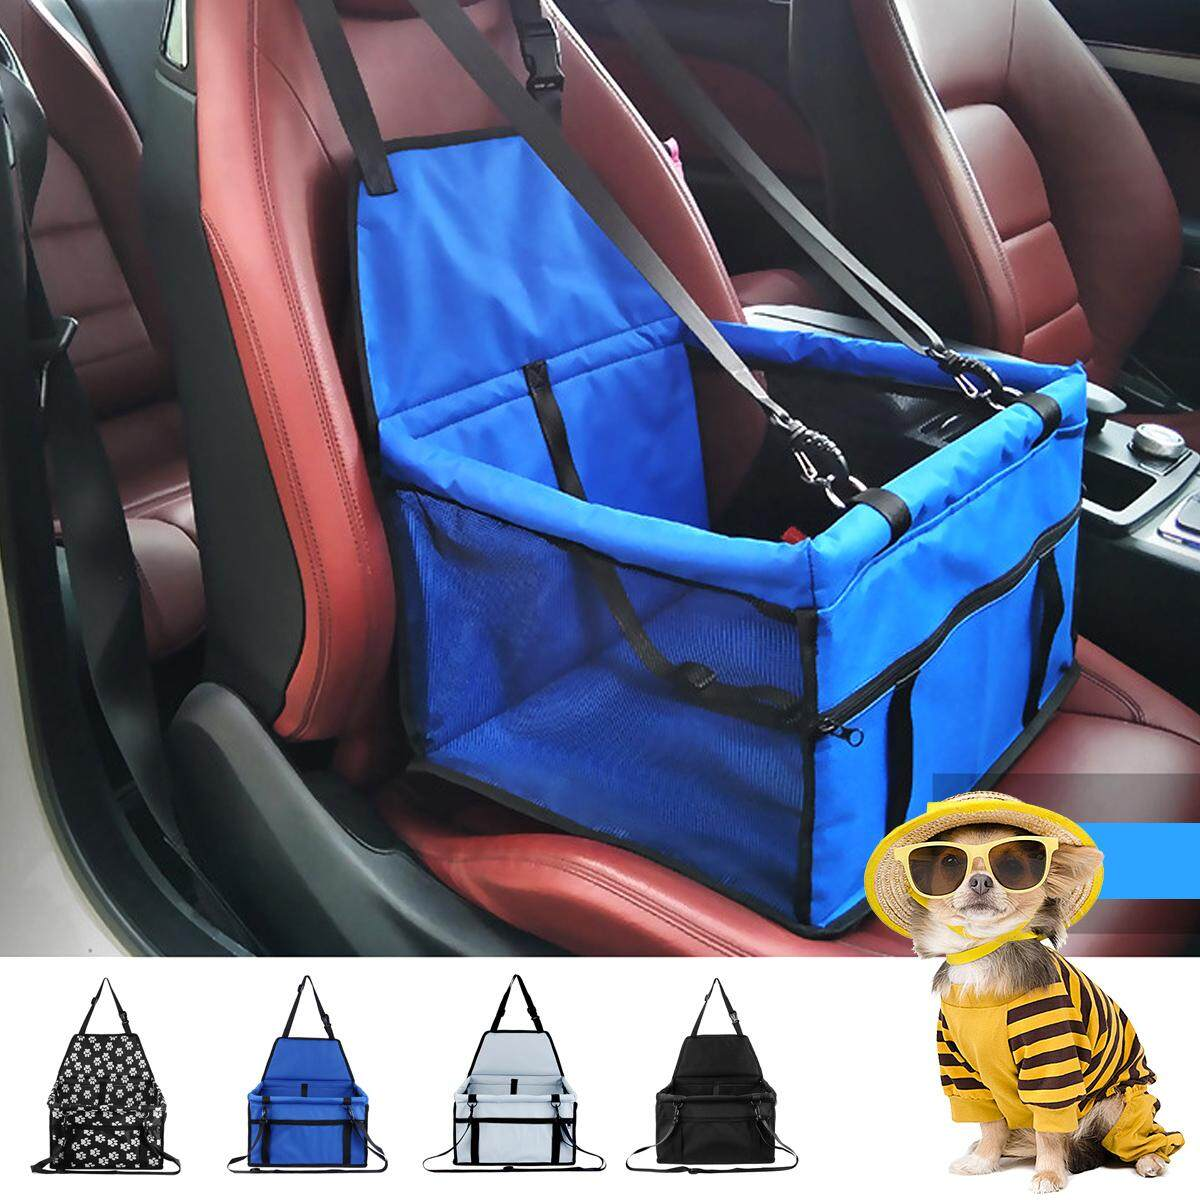 Folding Waterproof Puppy Pet Cats Dog Car Travel Booster Seat Carrier Protector - Blue By Freebang.